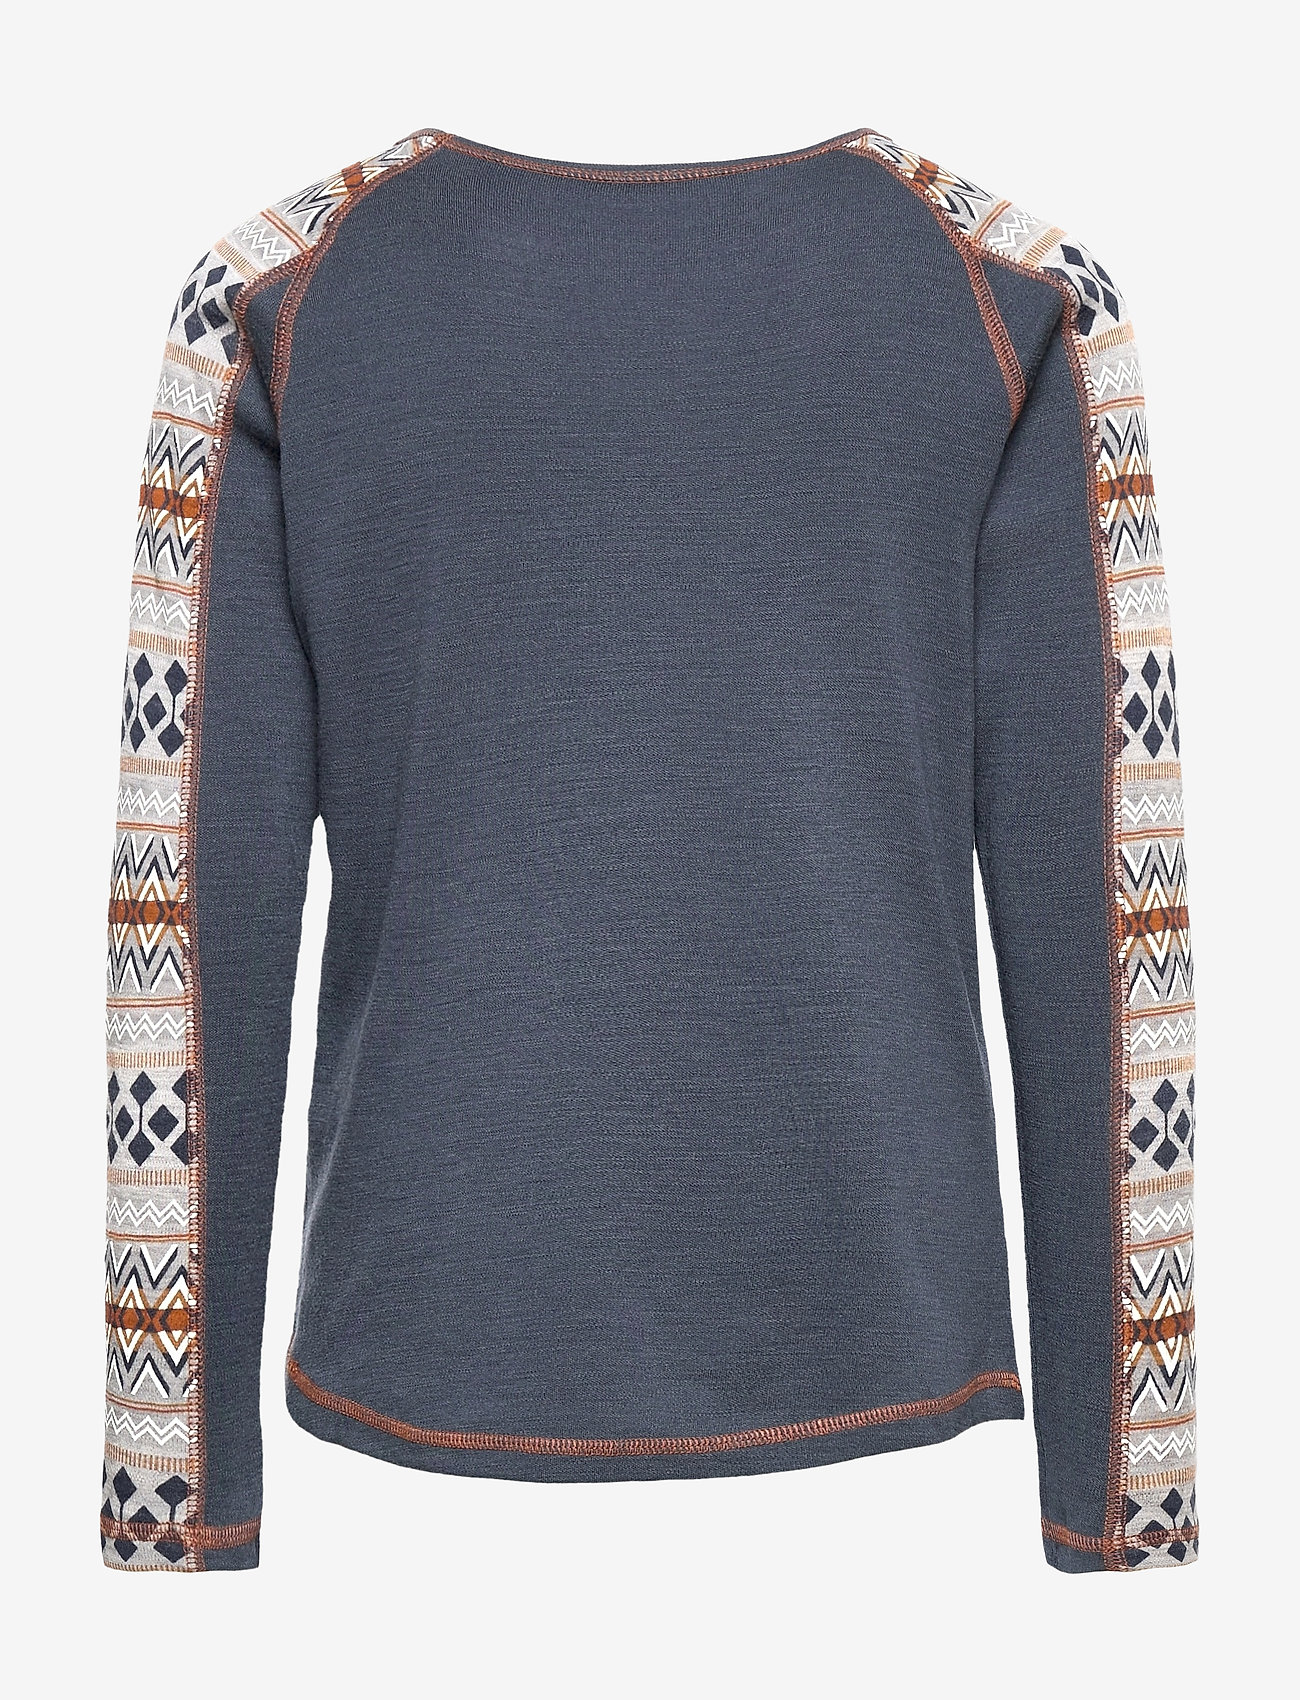 name it - NKMWILLTO WOOL LS TOP NOOS XX - basislag - ombre blue - 1